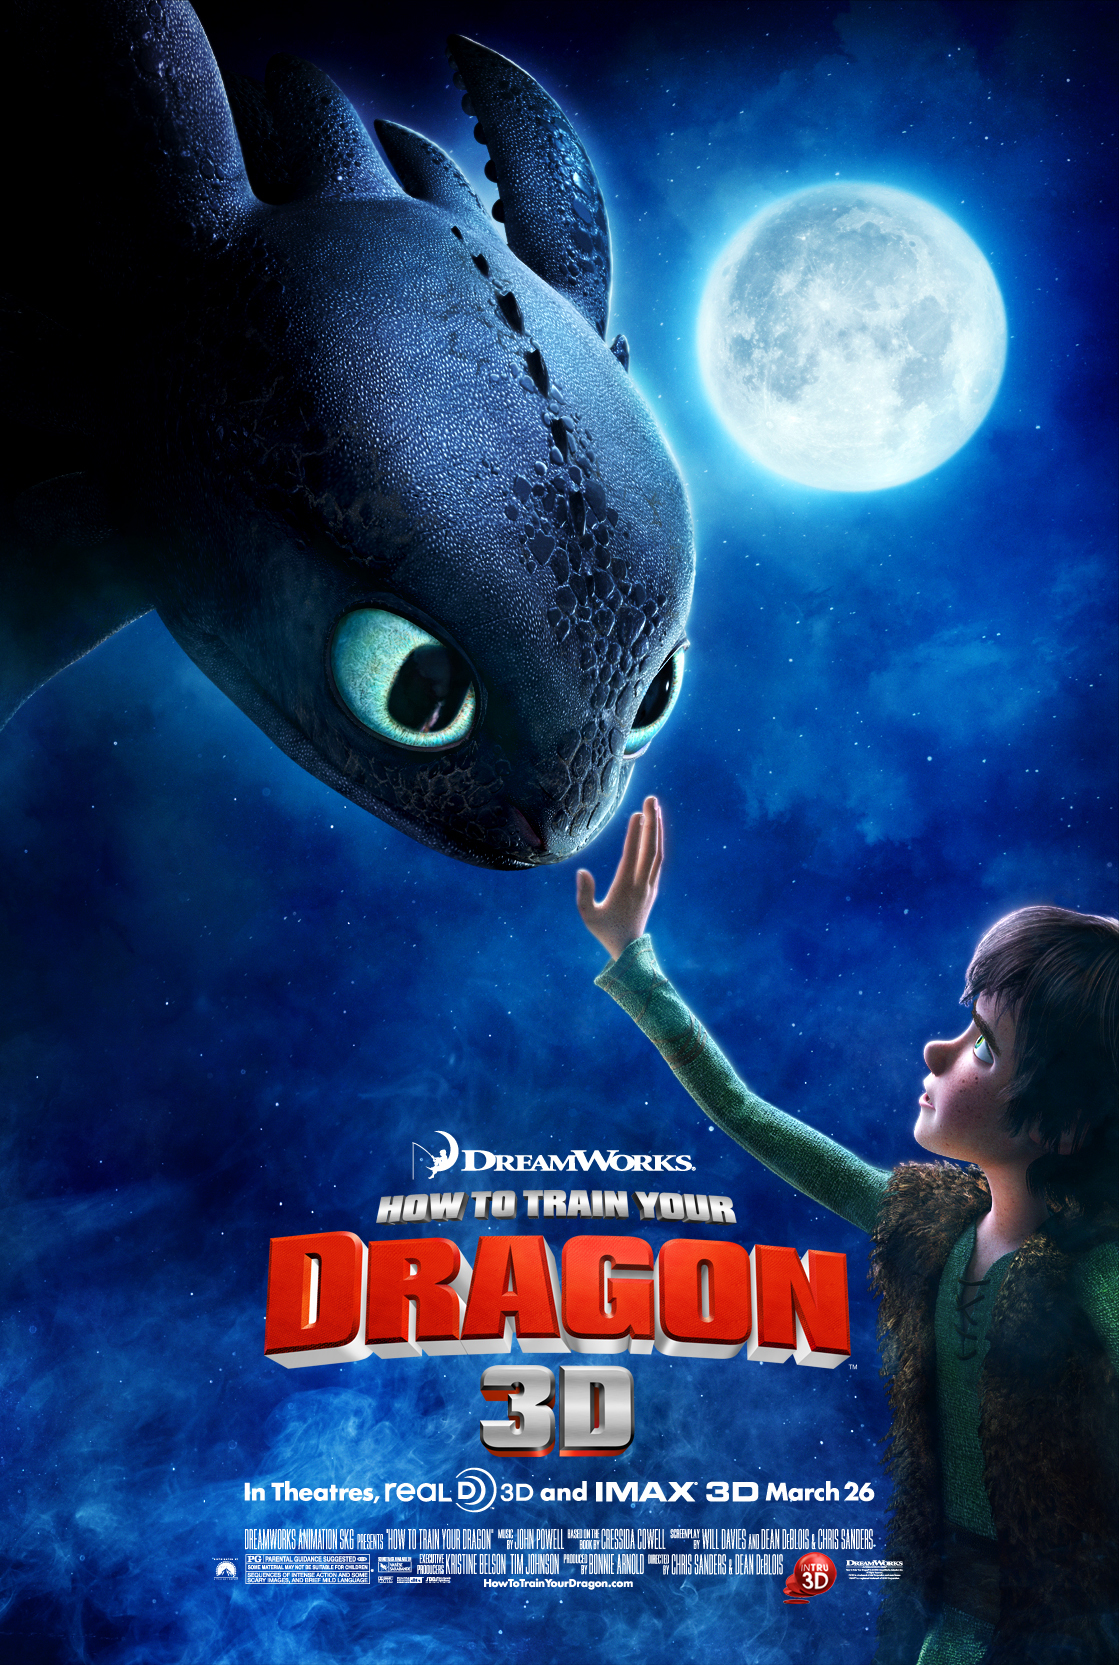 How to Train Your Dragon (2010) - Directed by: Dean DeBlois, Chris SandersStarring: Jay Baruchel, Gerard Butler, Christopher Mintz-Plasse, America Ferrara, Craig Ferguson, Jonah Hill, Kristen Wigg, T.J. Miller, David TennantRated: PG for Sequences of Intense Action and Some Scary Images, and Brief Mild LanguageRunning Time: 1 h 38 mTMM Score: 5 stars out of 5STRENGTHS: Story, Music, Cinematography, Production Design, World Building, ThemesWEAKNESSES: -